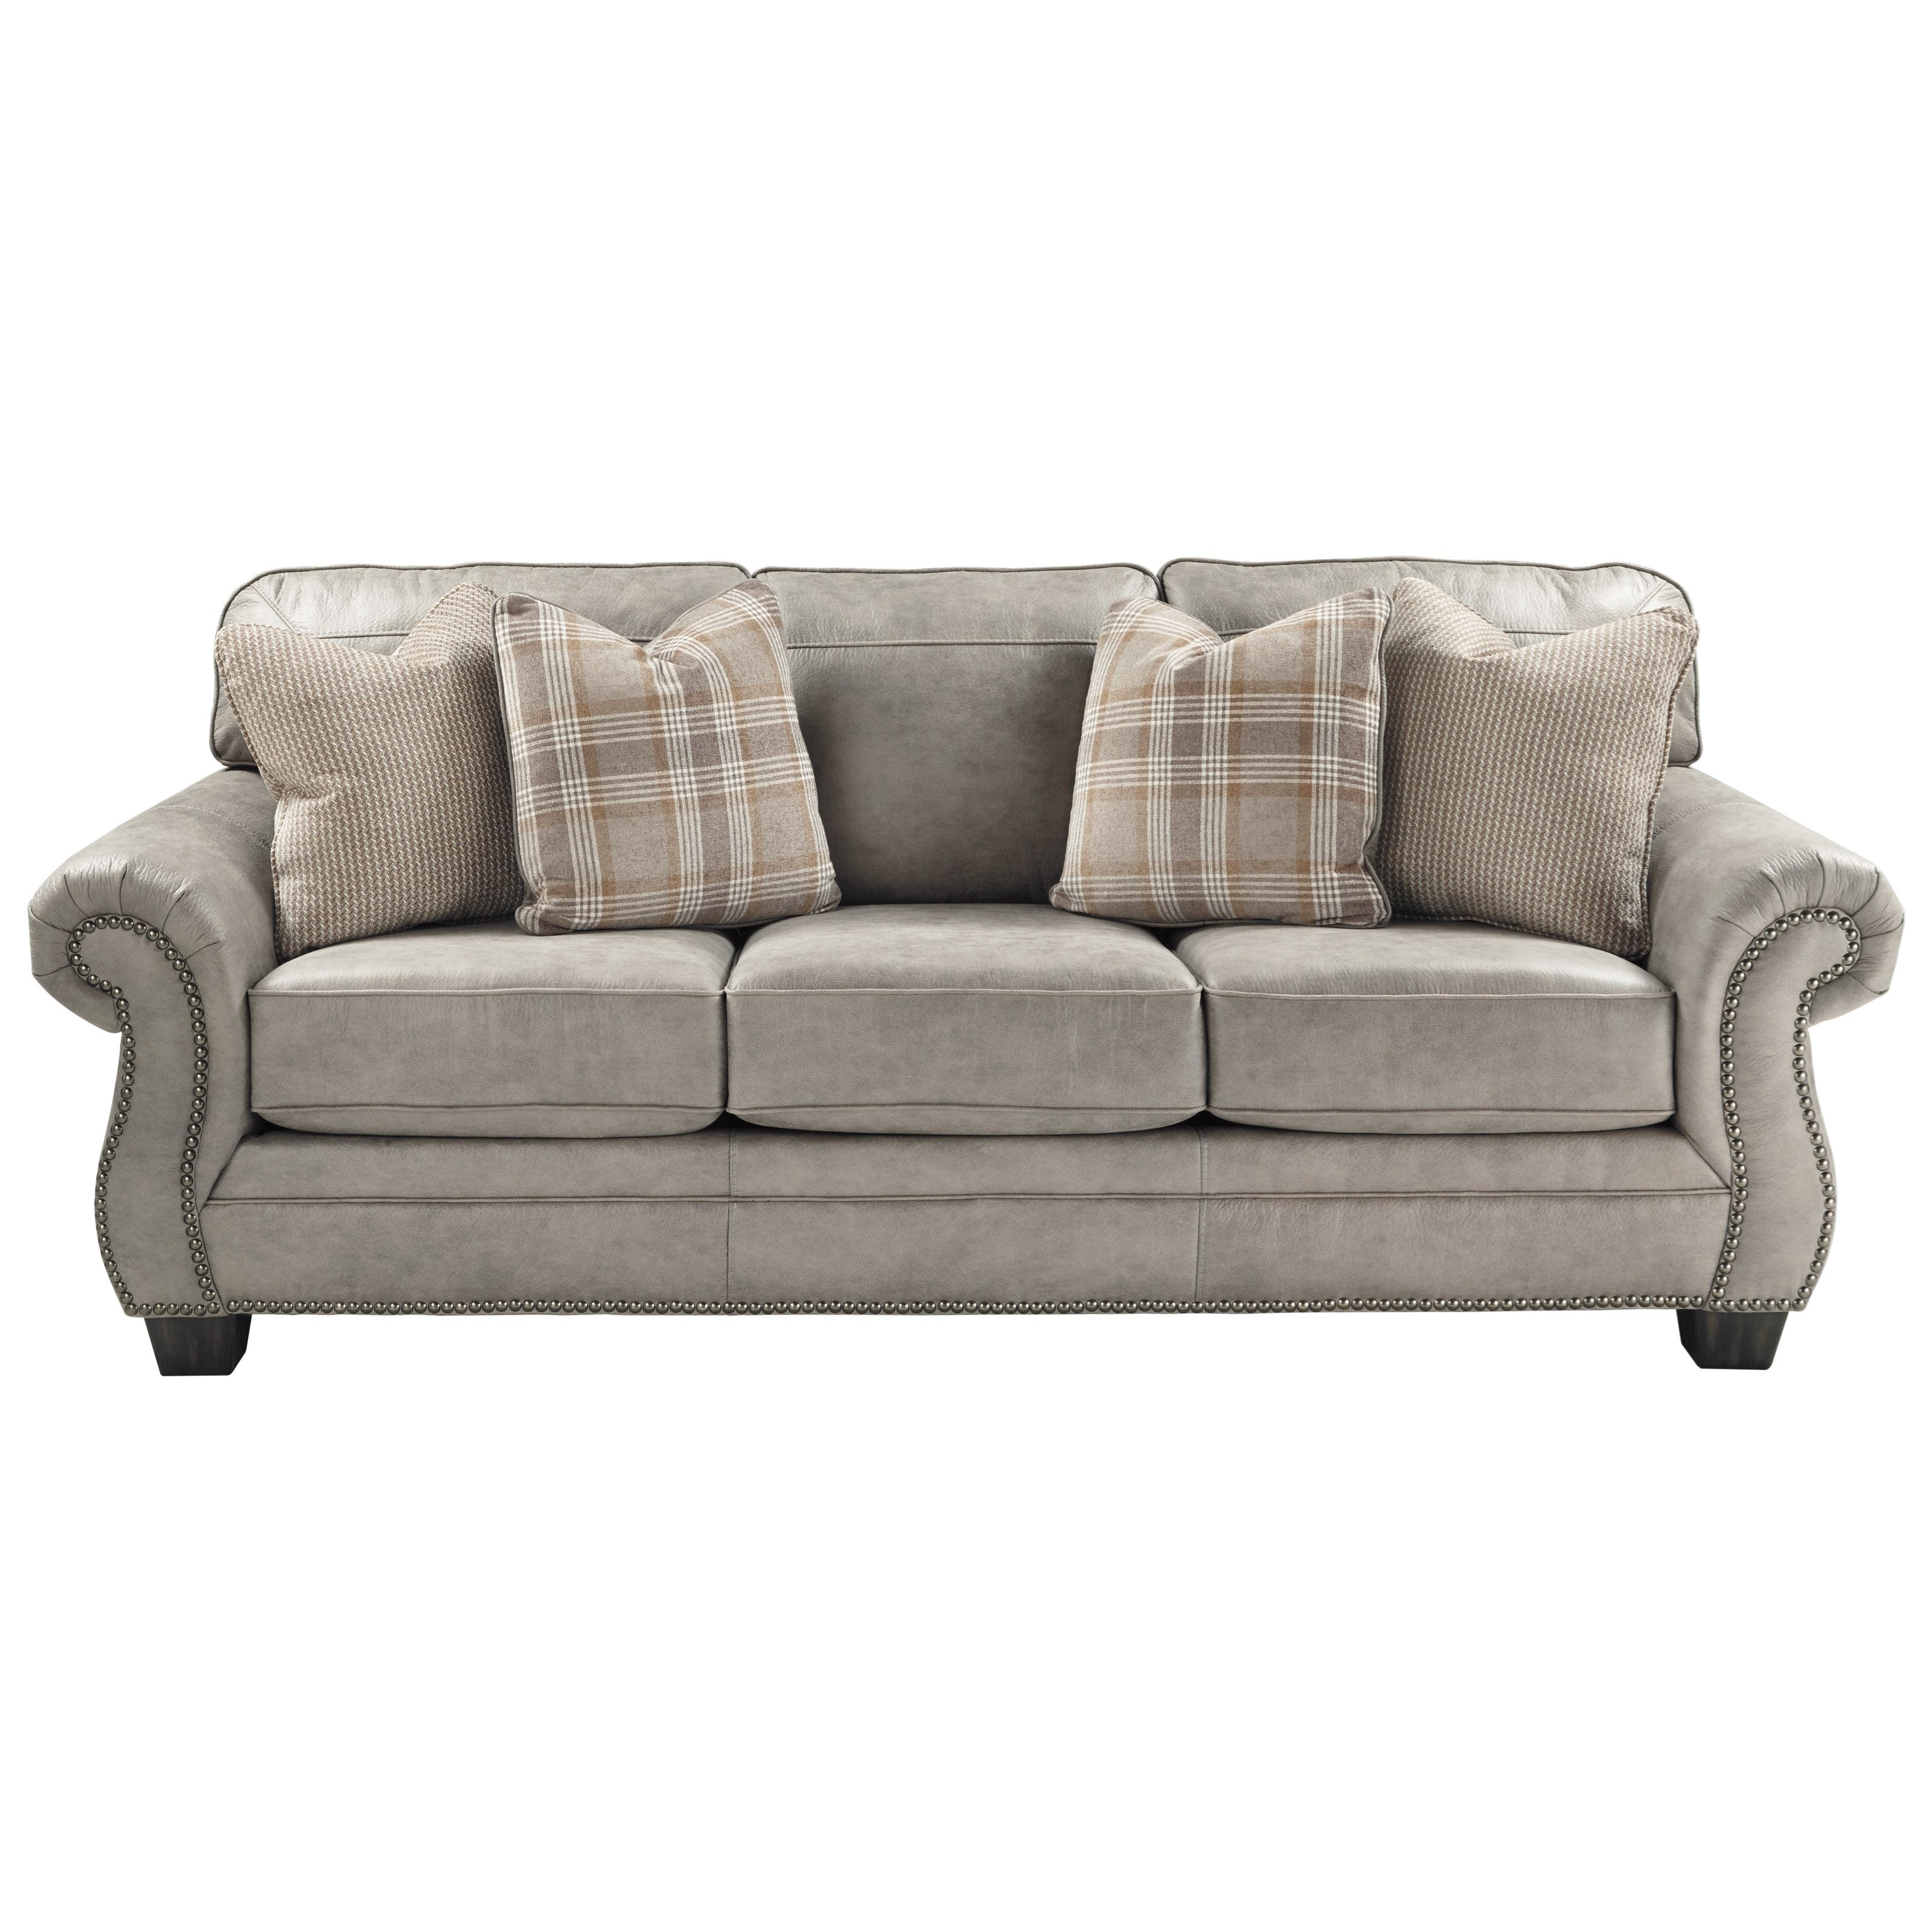 Olsberg Queen Sofa Sleeper by Signature Design by Ashley at Beck's Furniture